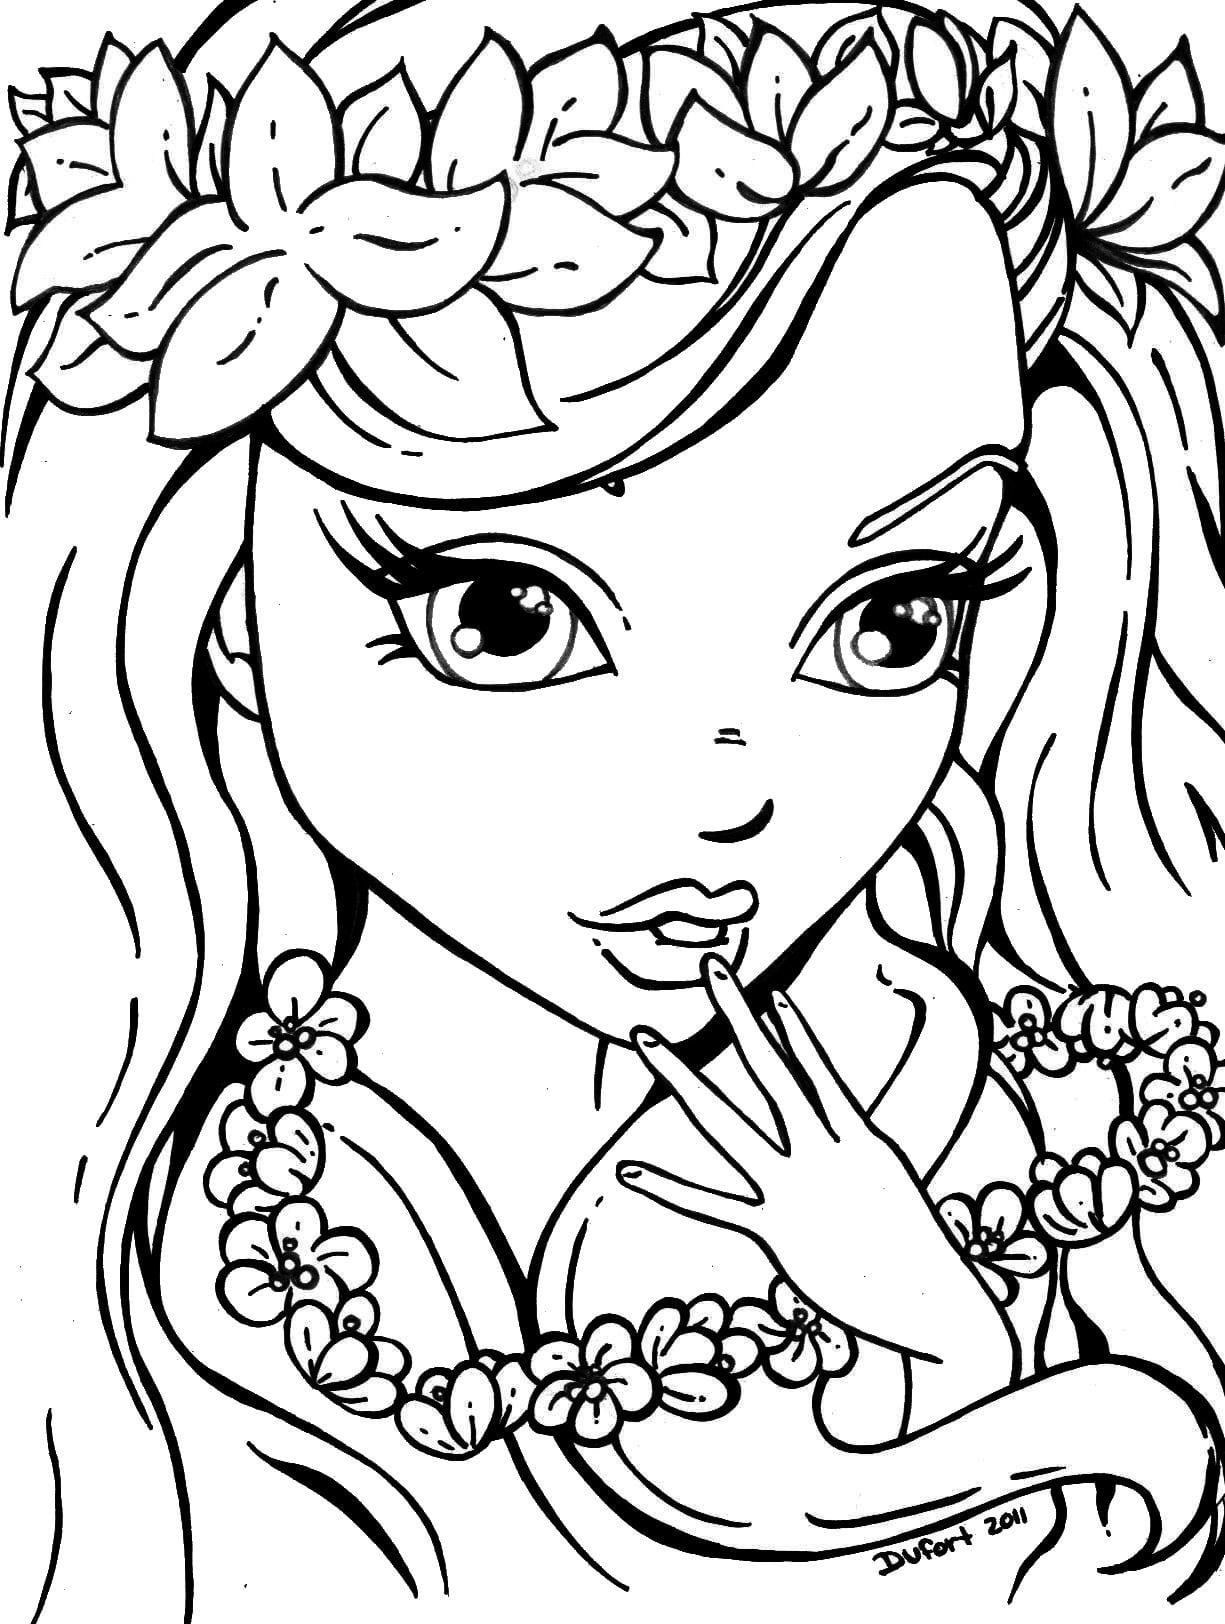 Detailed Coloring Pages For Teens Printable Gallery Girls And